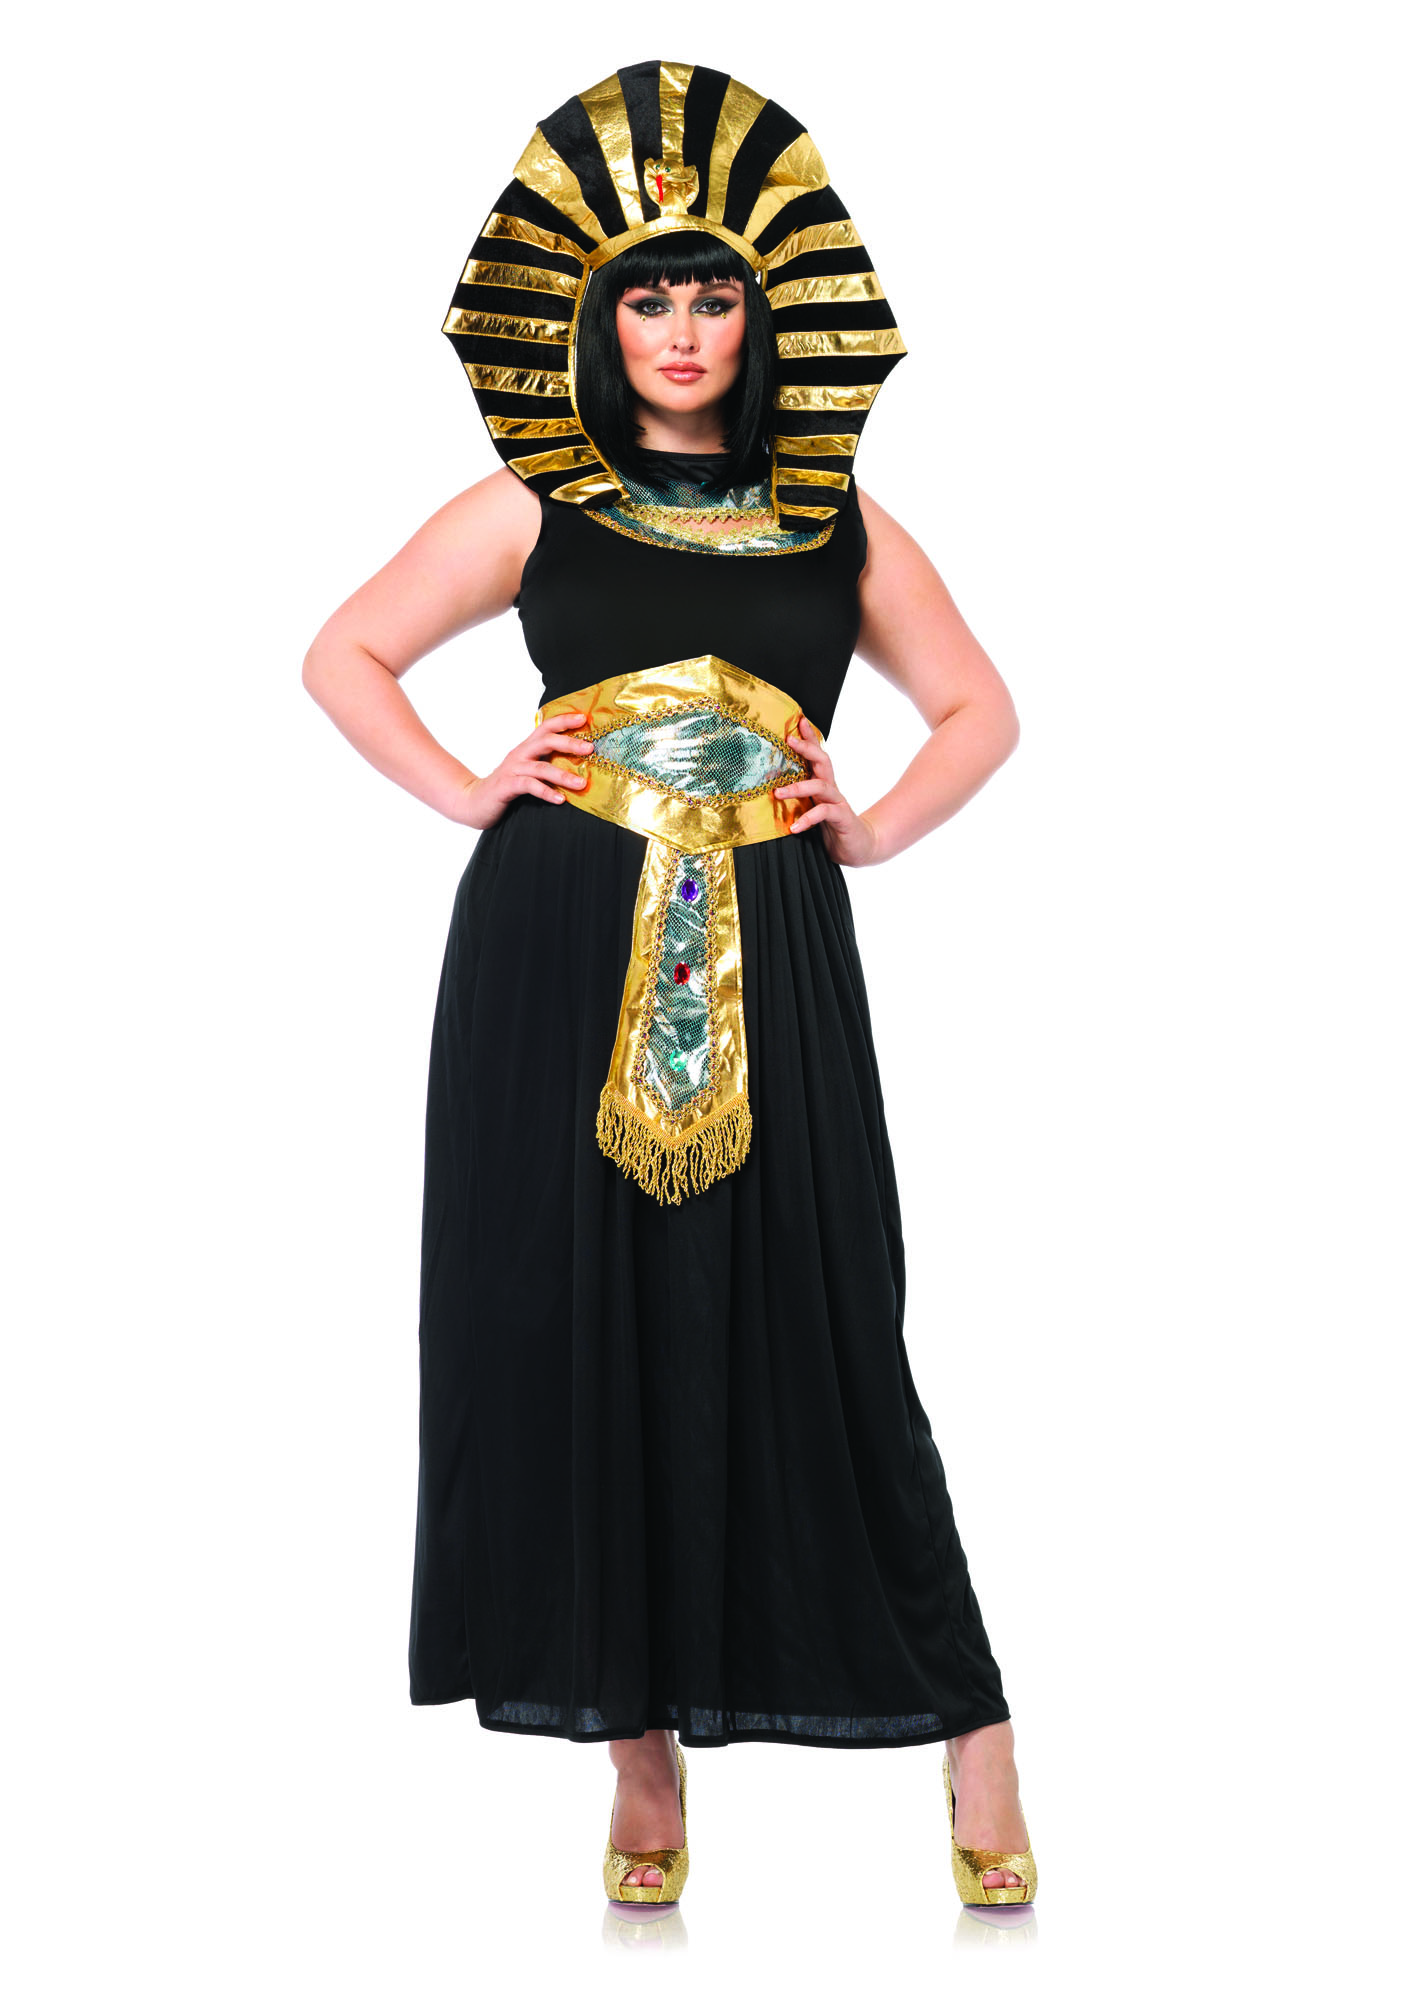 Home gt gt cleopatra costumes gt gt jewel of the nile egyptian adult - Ifavor123 Com Leg Avenue Womens Sexy Egyptian Cleopatra Nile Queen Goddess Halloween Costumes 63 99